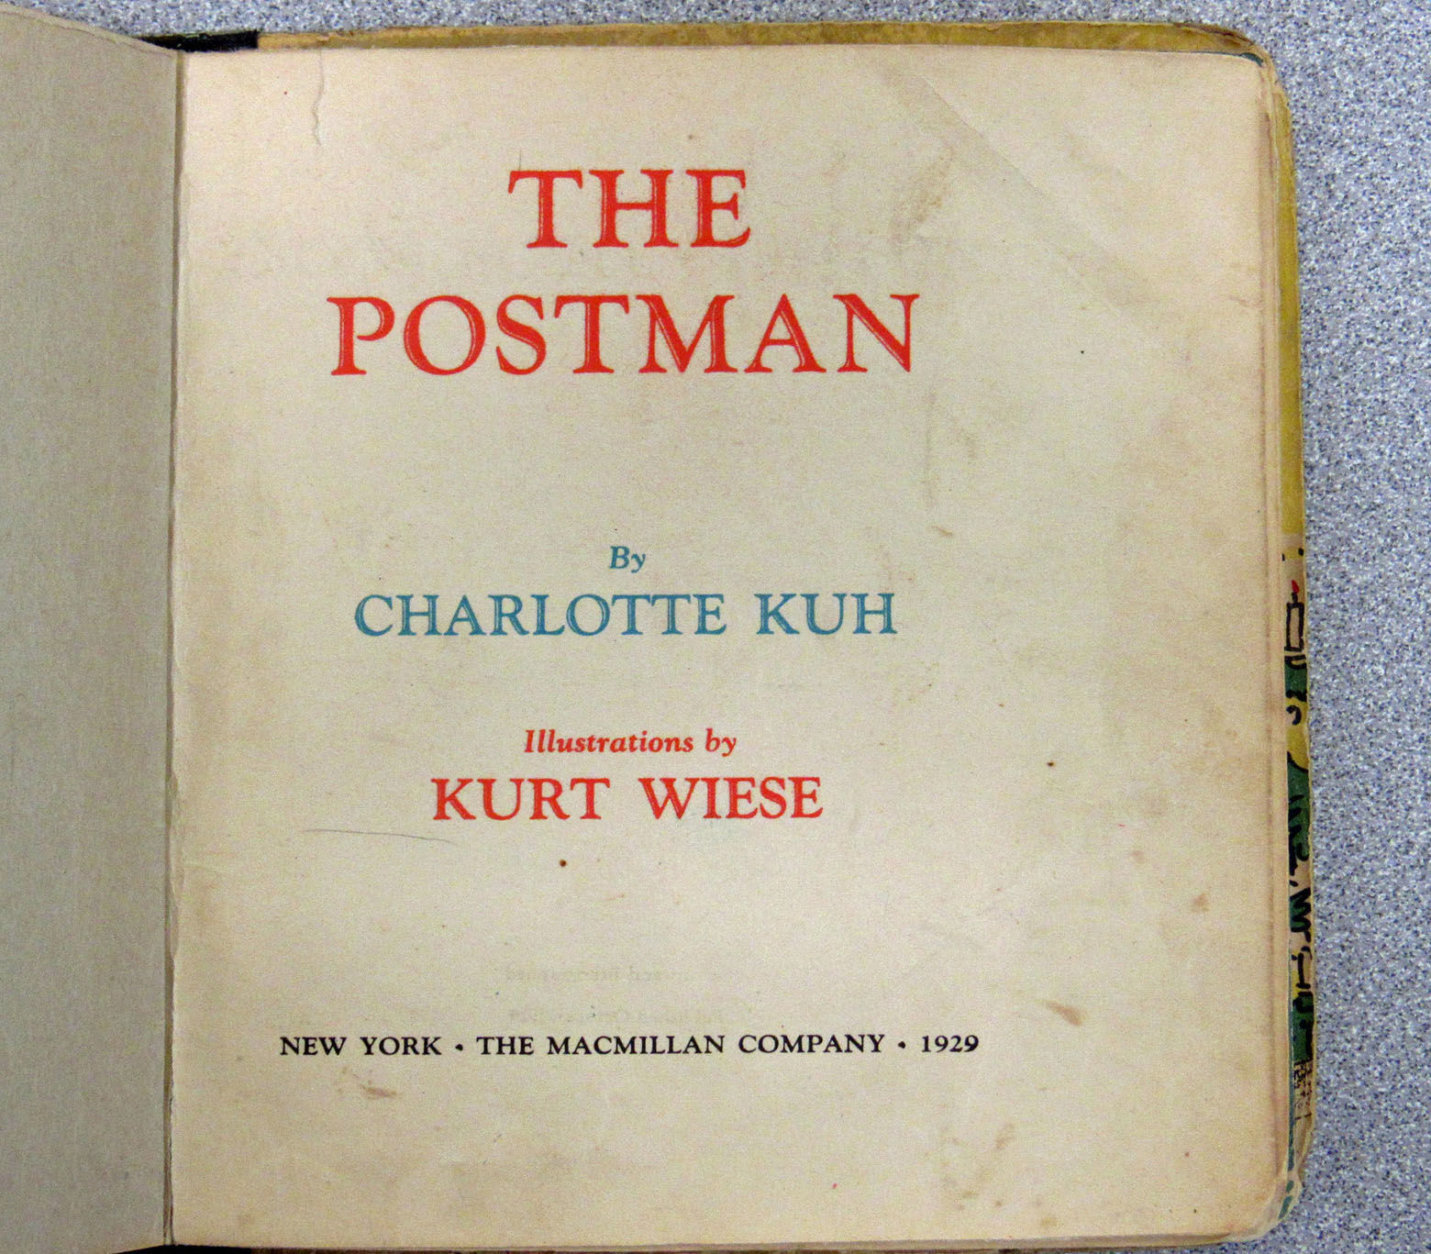 """""""The Postman"""" by Charlotte Kuh and illustrated by Kurt Wiese was originally published in 1929. (Courtesy Montgomery County Public Library)"""